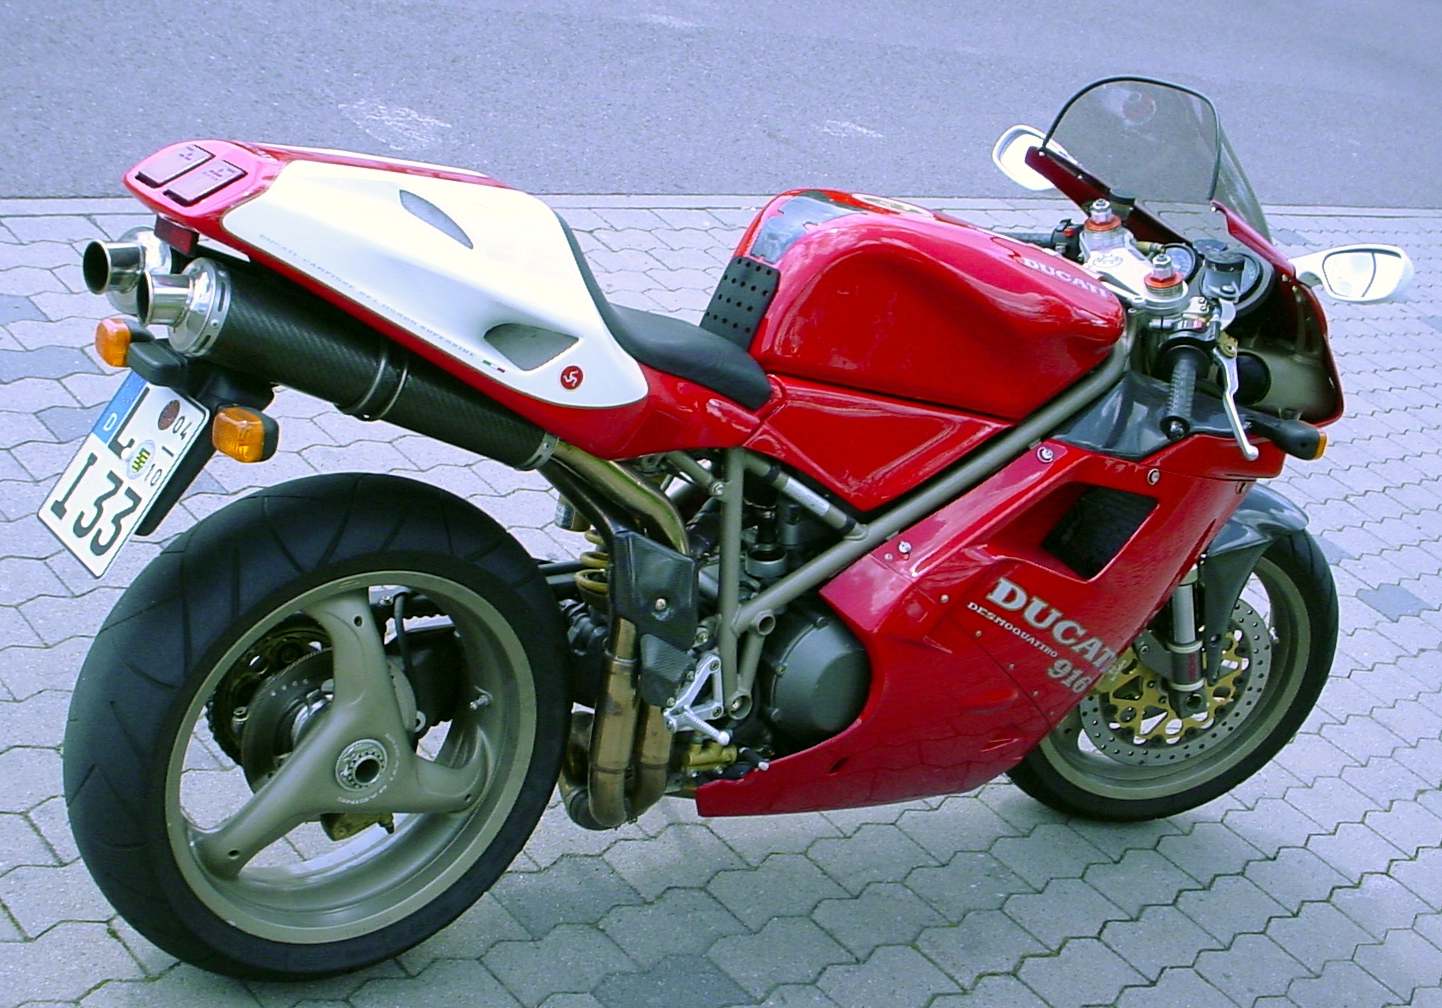 Http Ducati Com Ducati   Top Speed Gps Panigale  A Html